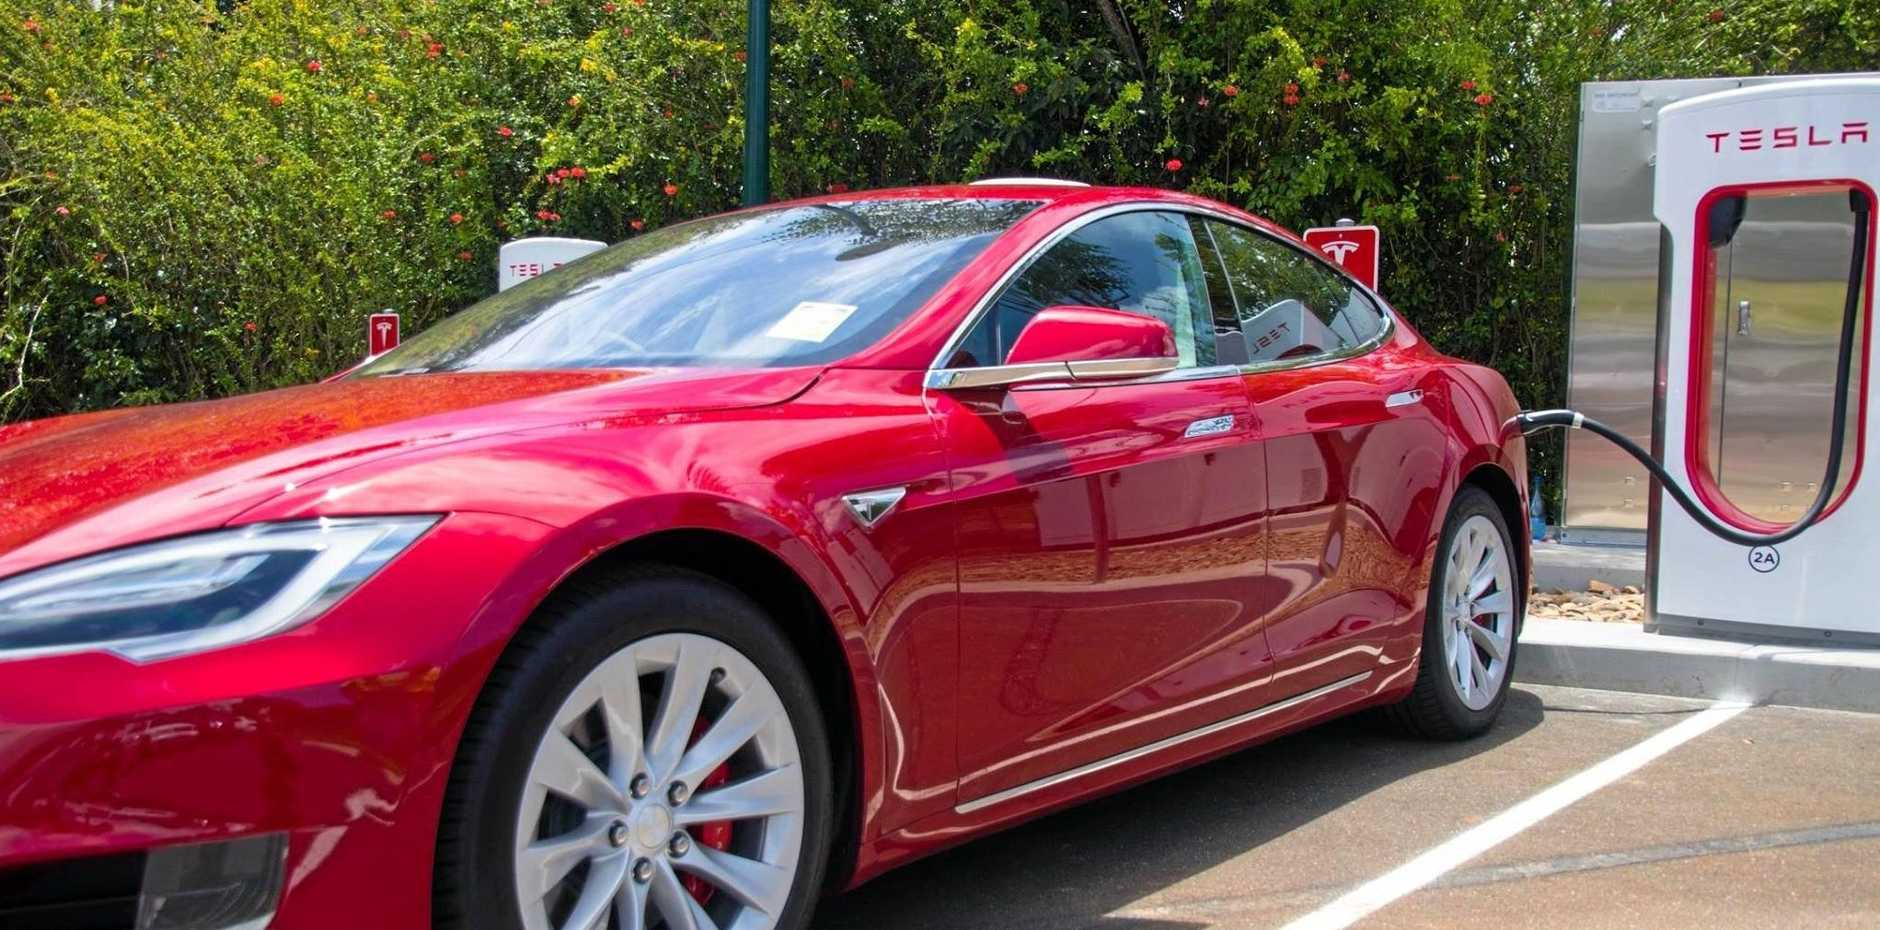 CHARGER: One of the first Tesla cars to test out the new charging station at the Macadamia Castle in the Northern Rivers.